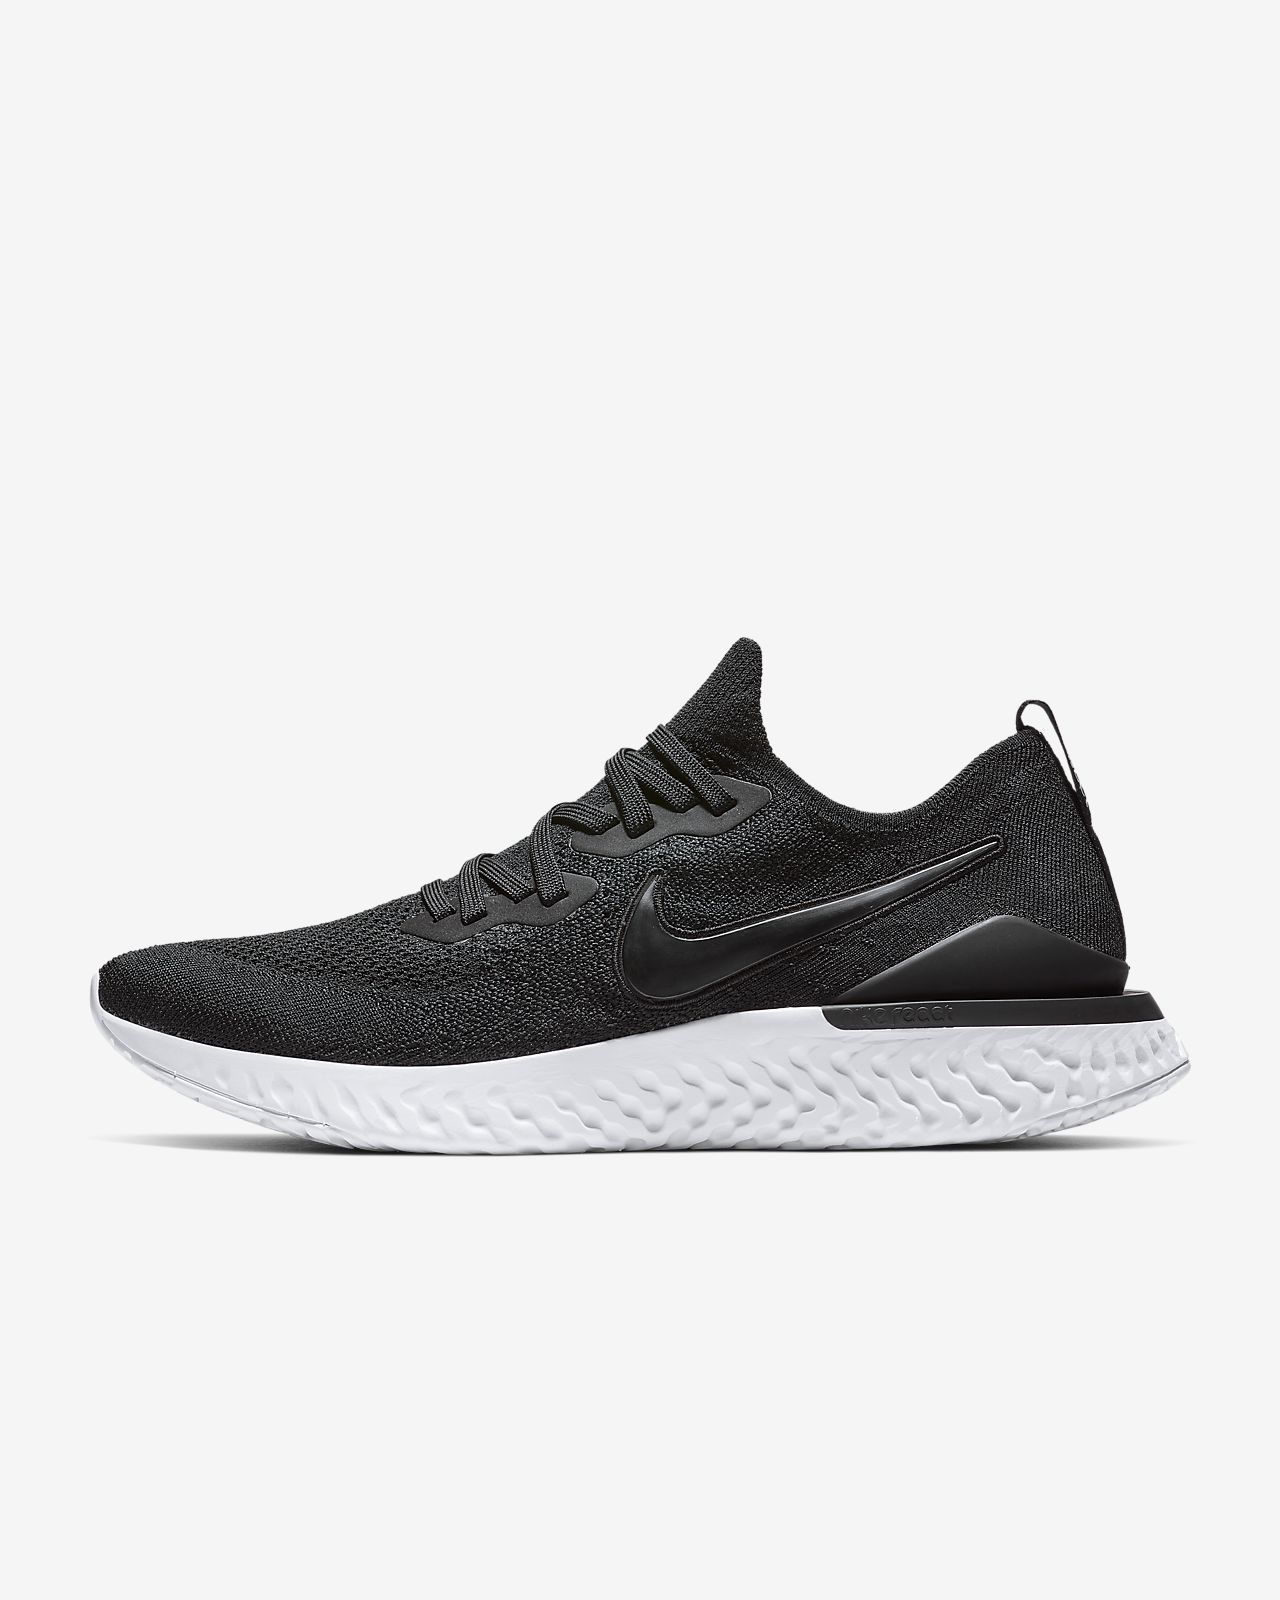 7c78a86f179 Nike Epic React Flyknit 2 Men s Running Shoe. Nike.com ZA